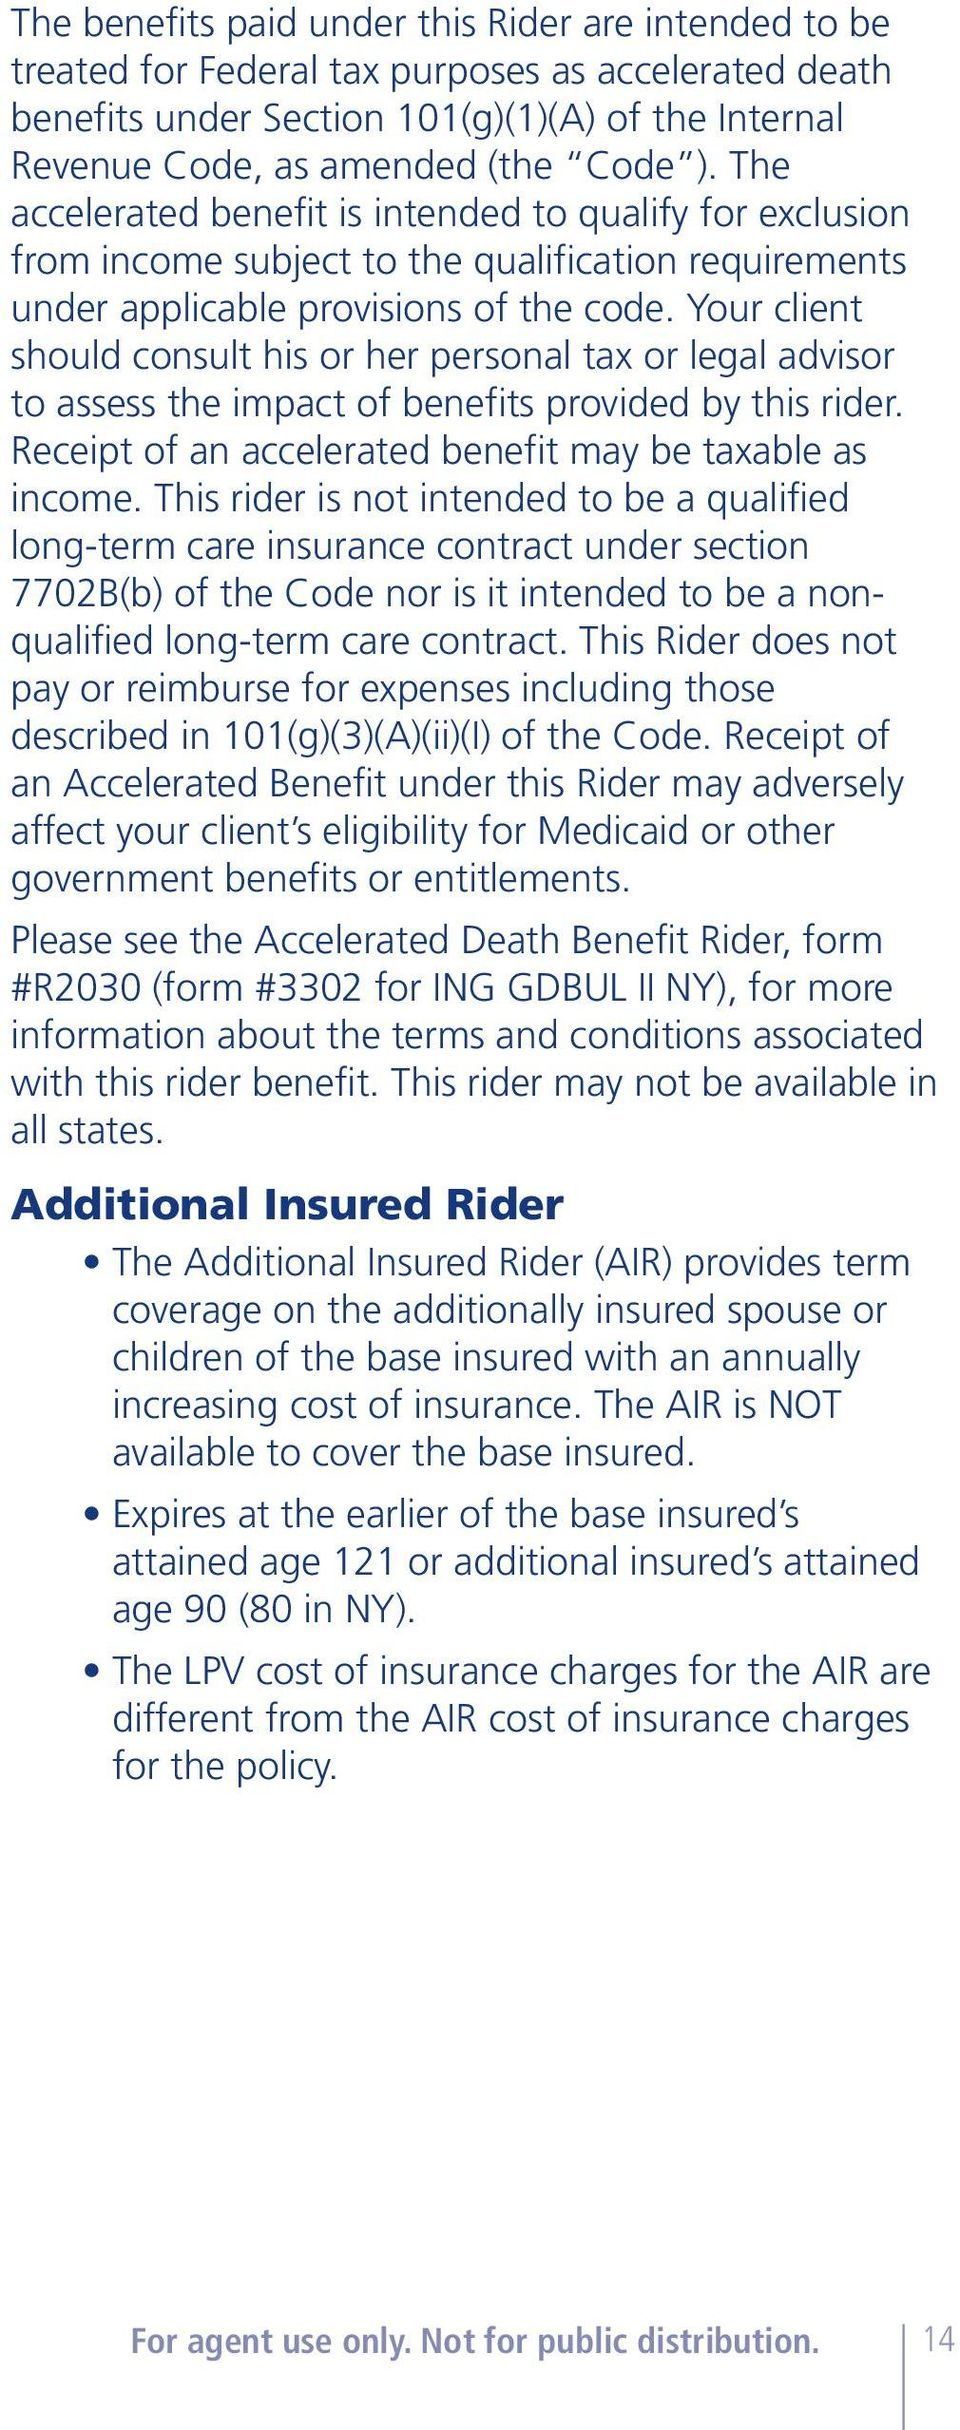 Your client should consult his or her personal tax or legal advisor to assess the impact of benefits provided by this rider. Receipt of an accelerated benefit may be taxable as income.